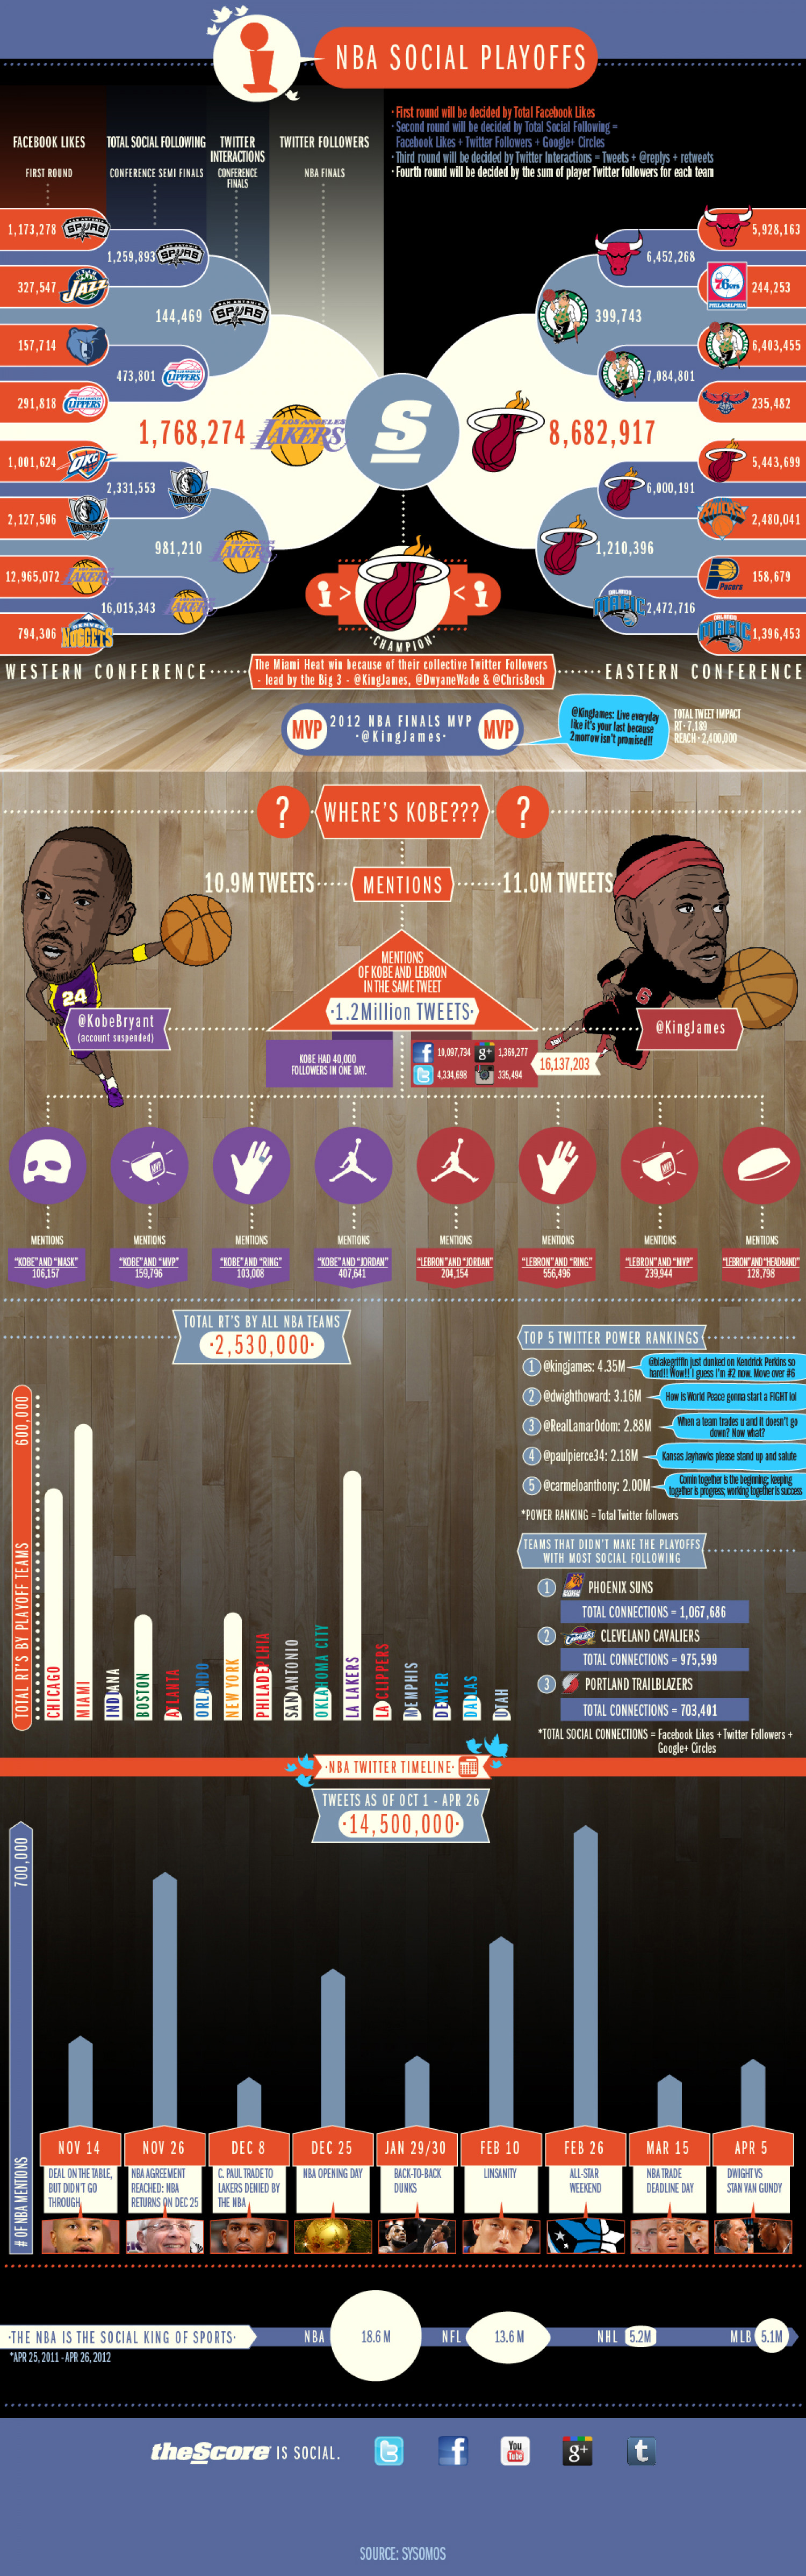 NBA Social Playoffs Infographic